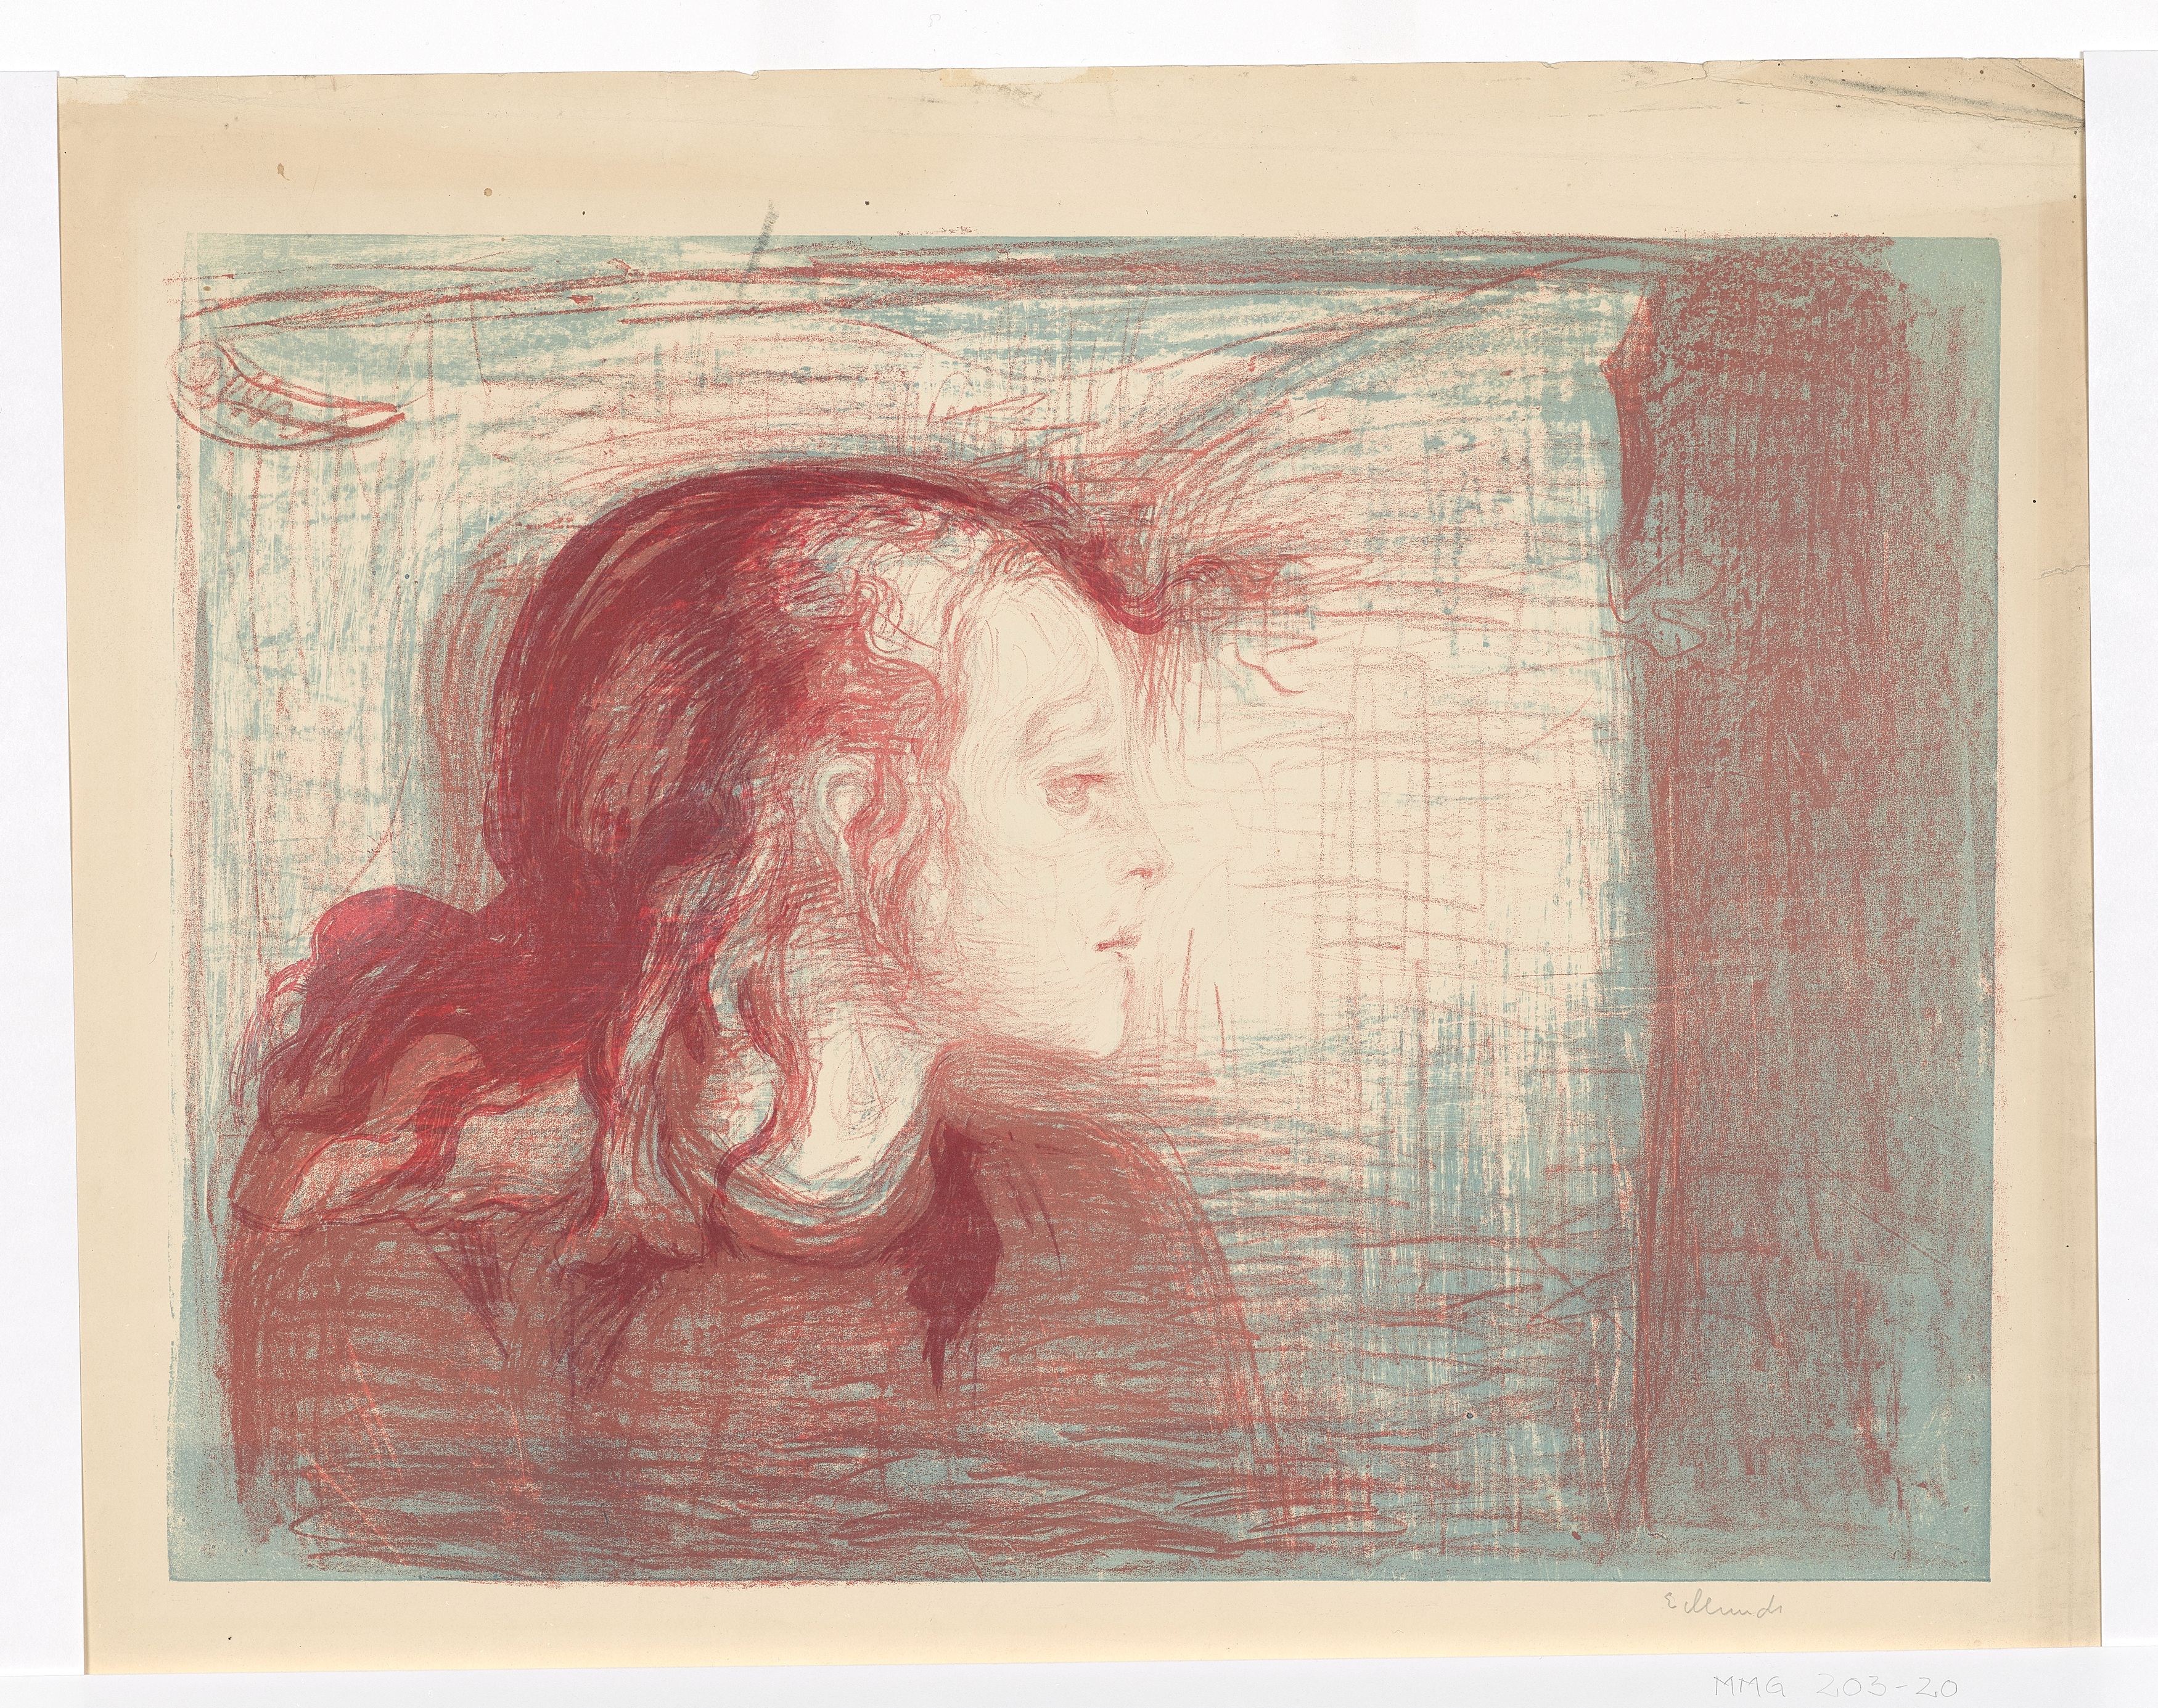 Edvard Munch: The Sick Child I. Lithograph, 1896. Photo © Munchmuseet